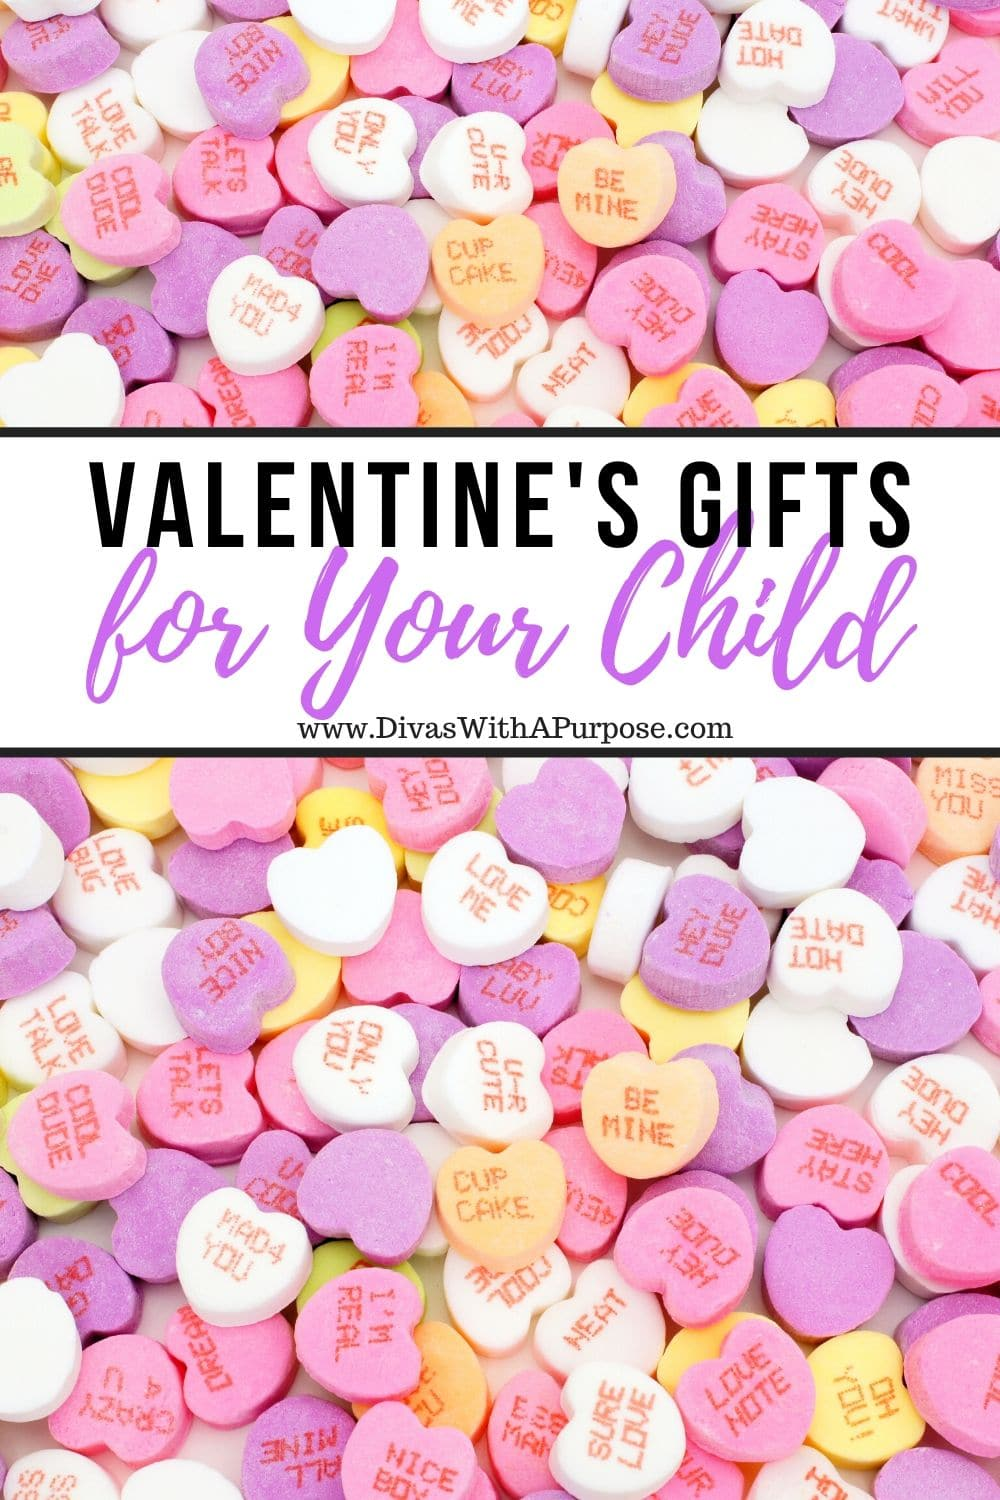 Valentine's Day is a fun and festive day to celebrate love and friendship. Here's a list of Valentine's gifts for your child to make their day! #valentinesday #parenting #giftguide